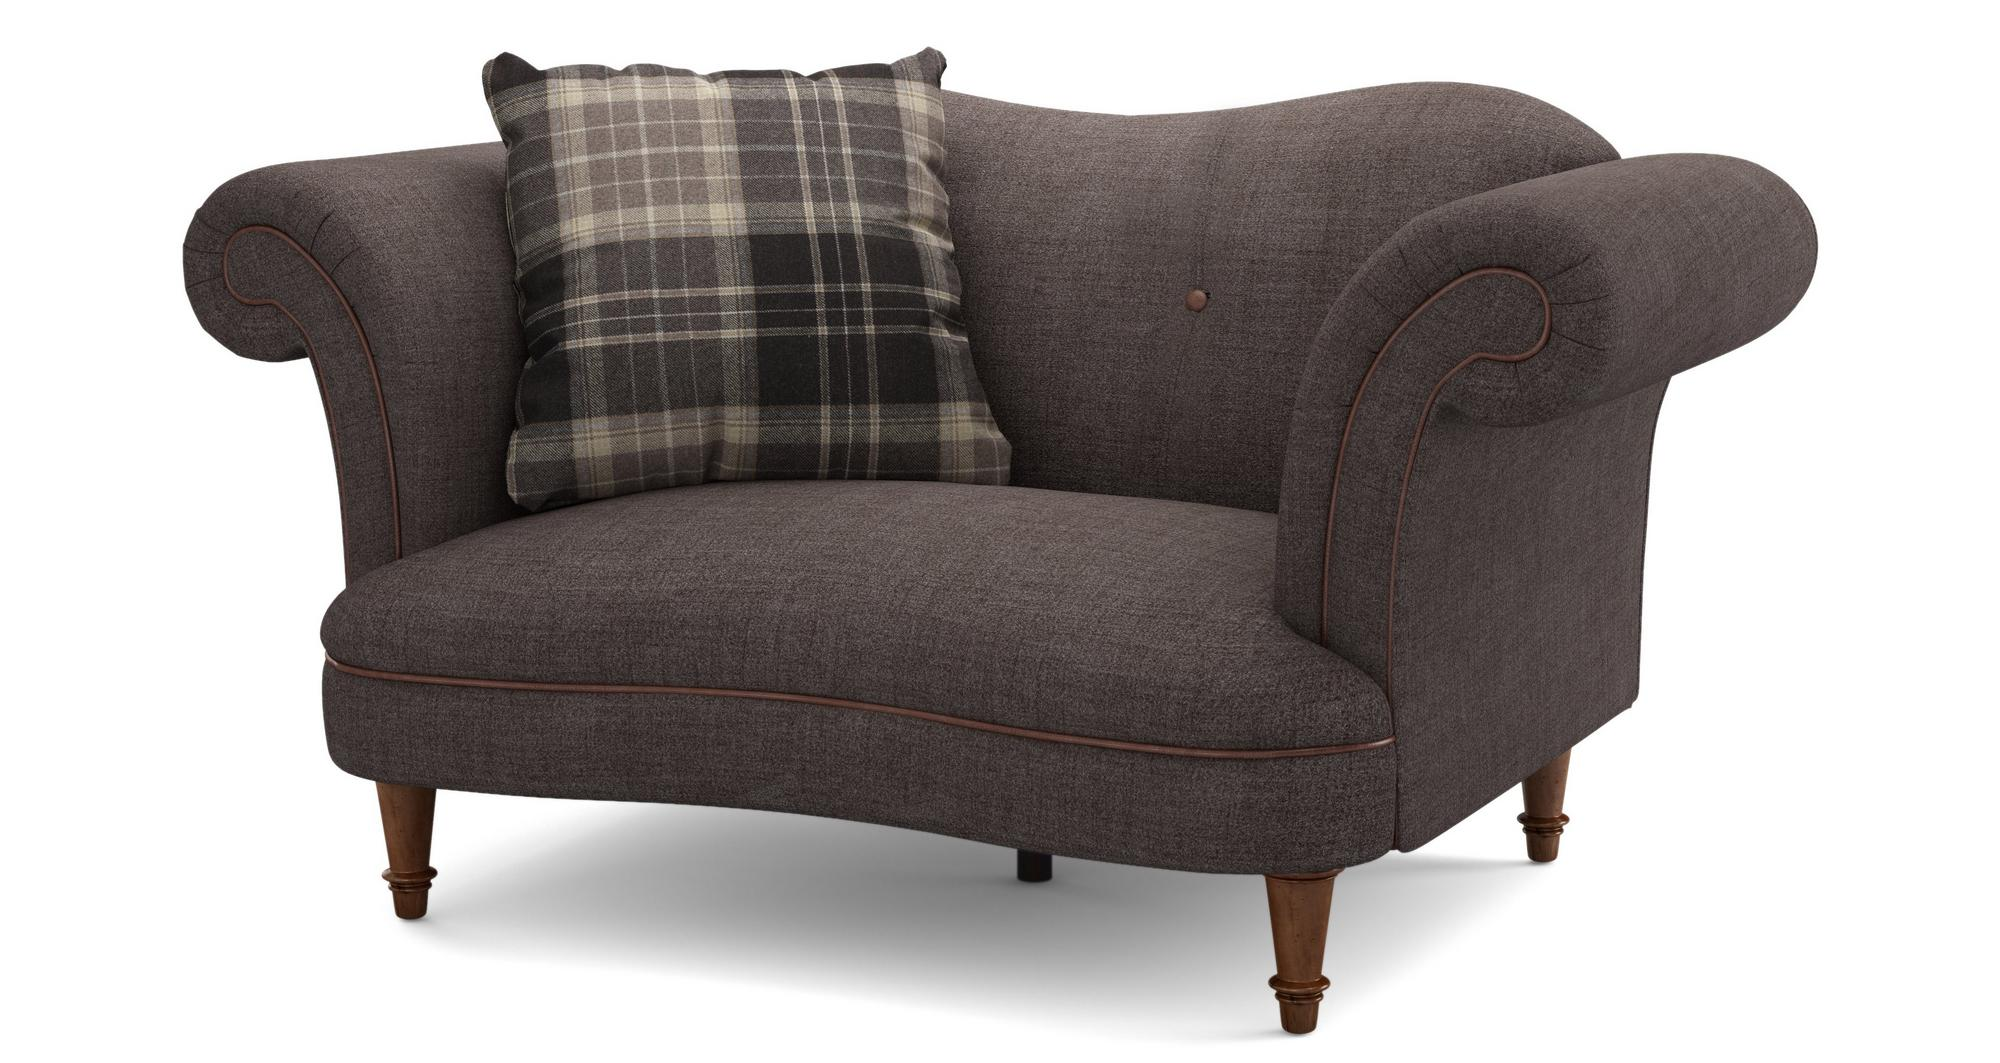 Dfs moray chocolate brown plain fabric 4 seater sofa cuddler stool Dfs 4 seater leather sofa